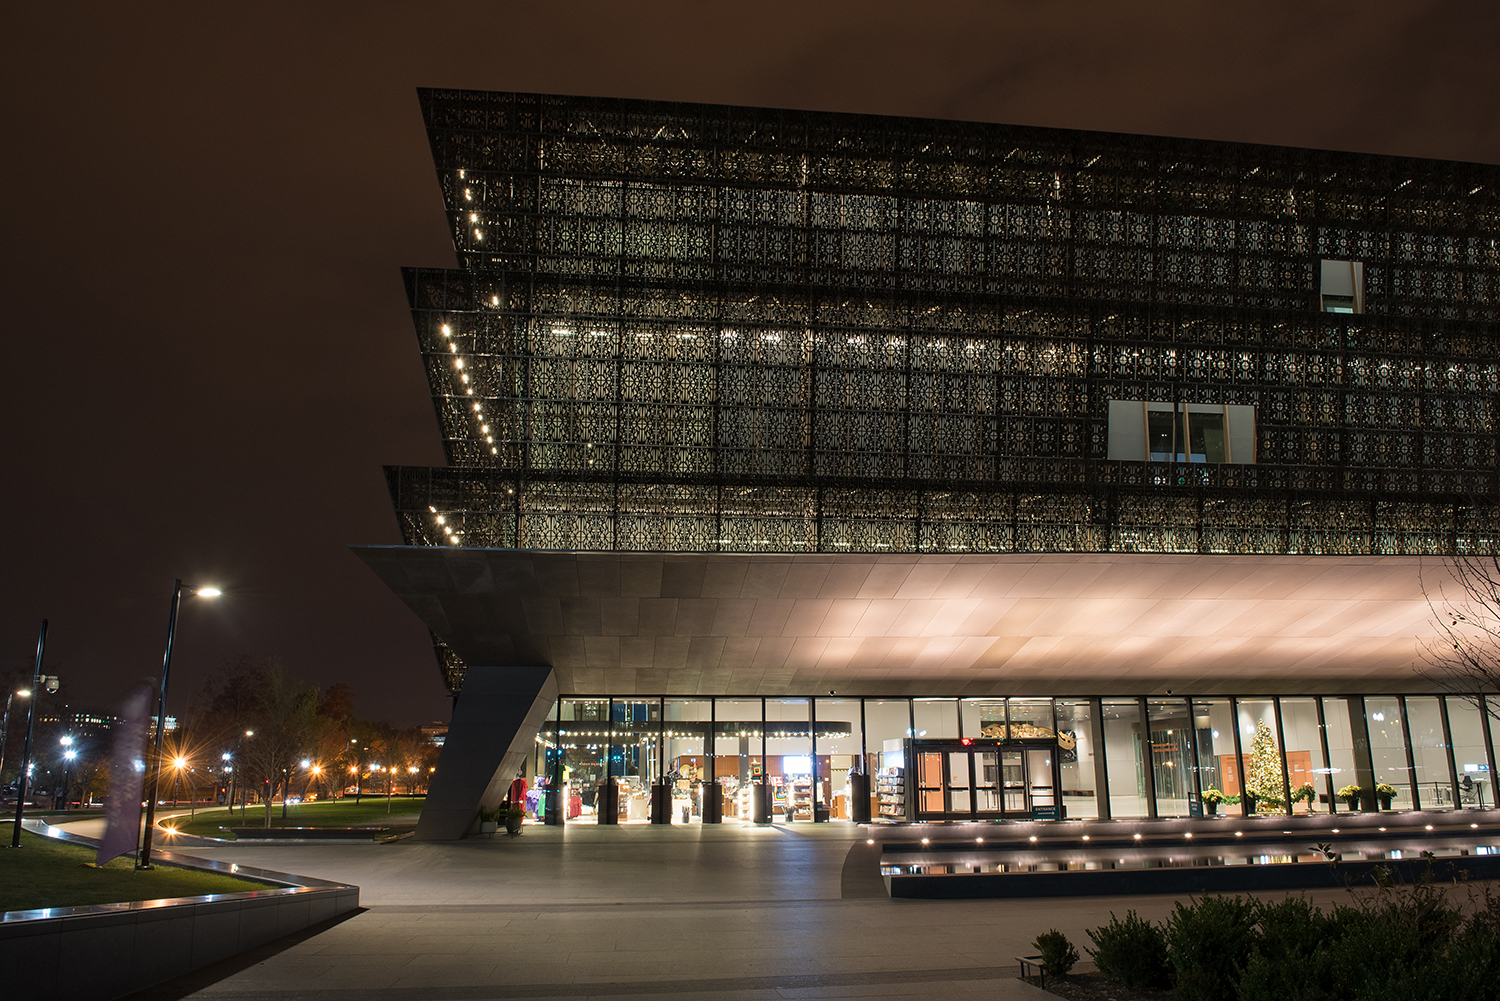 The brand-new National Museum of African American History and Culture in Washington, DC is completely wrapped in an intricate lattice structure.